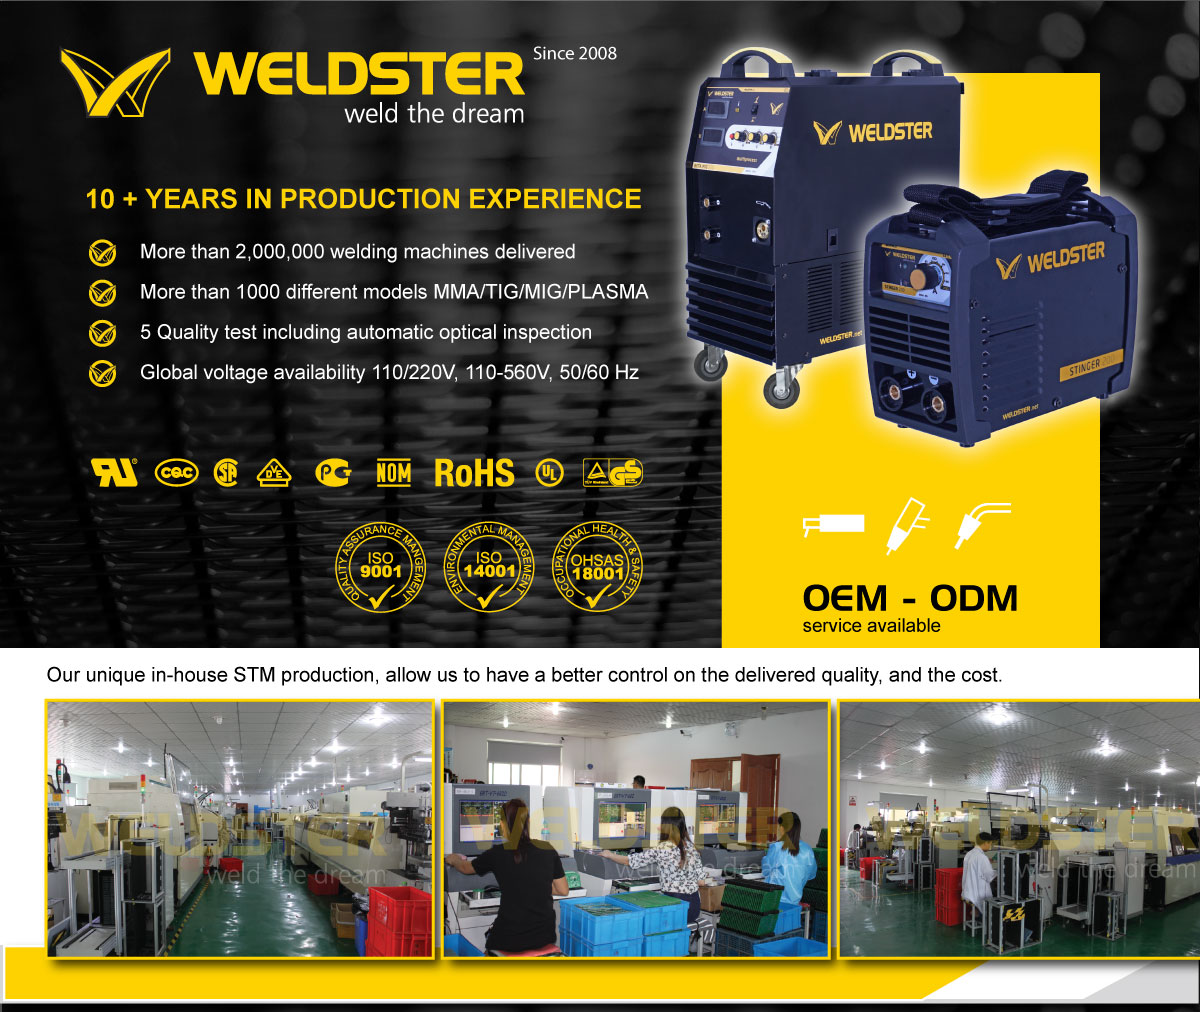 Weldster product range description